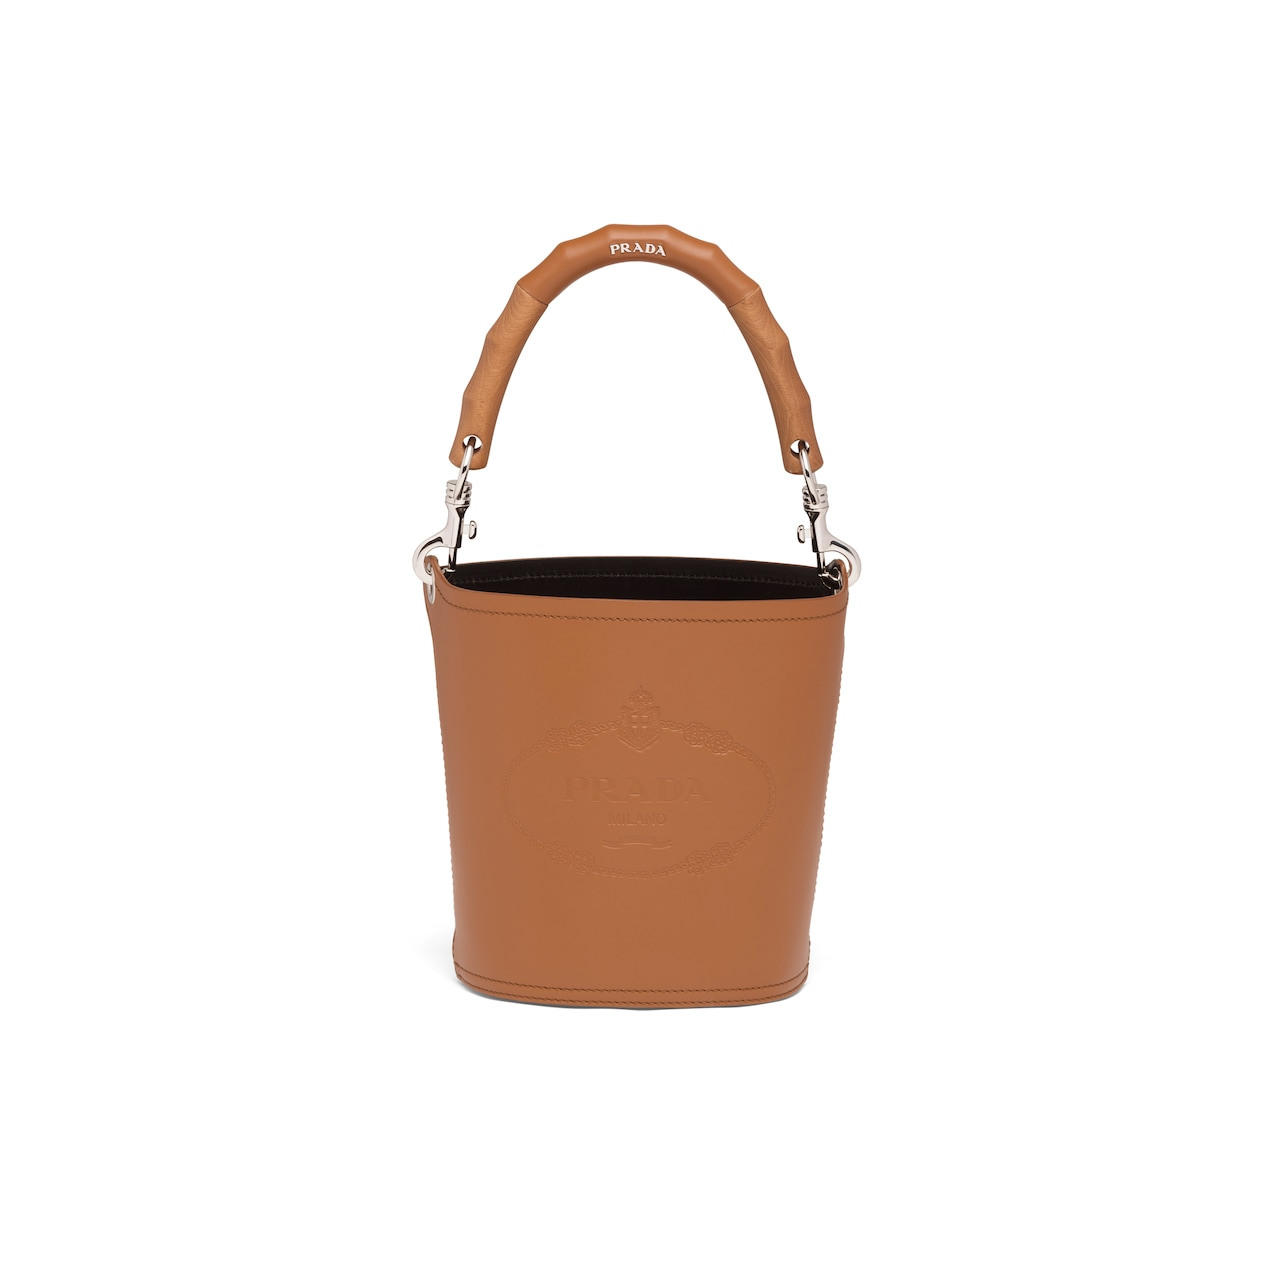 Leather bucket bag with wooden handle